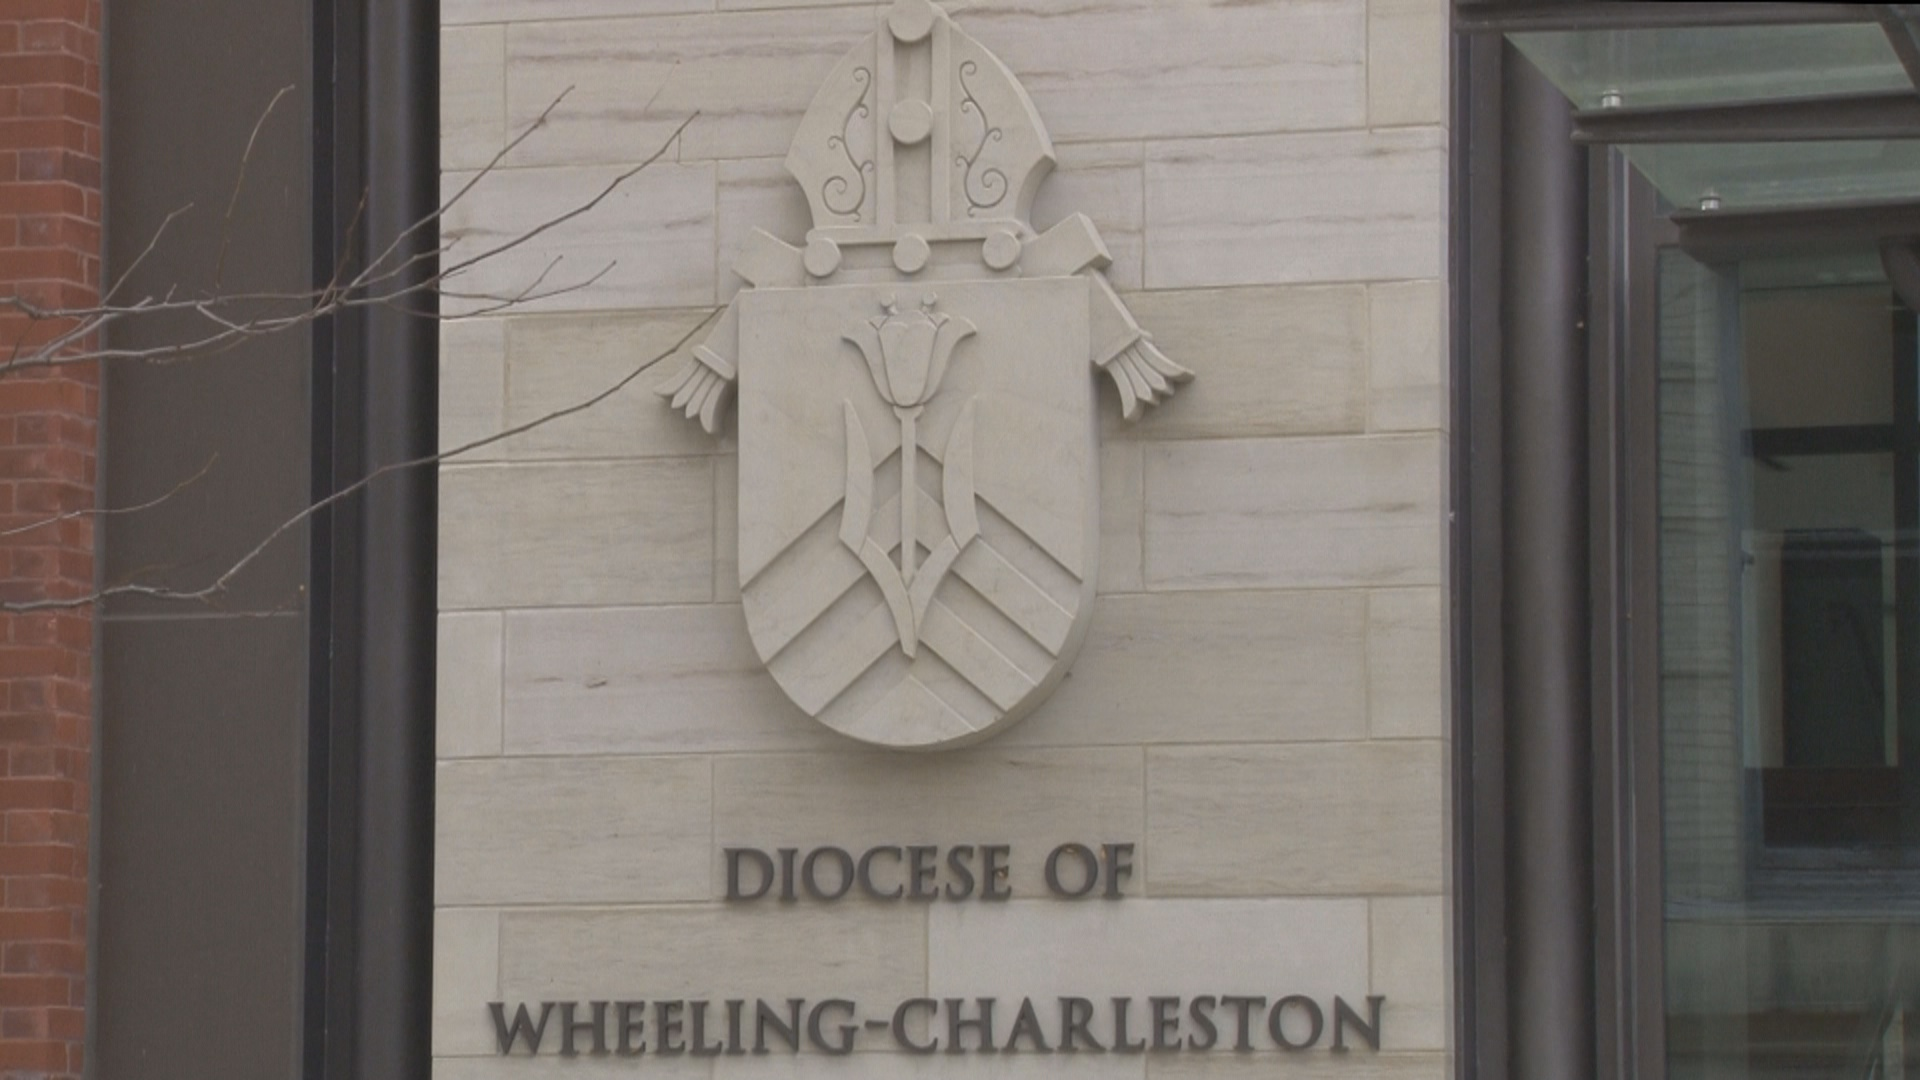 diocese of wheeling charleston.jpg